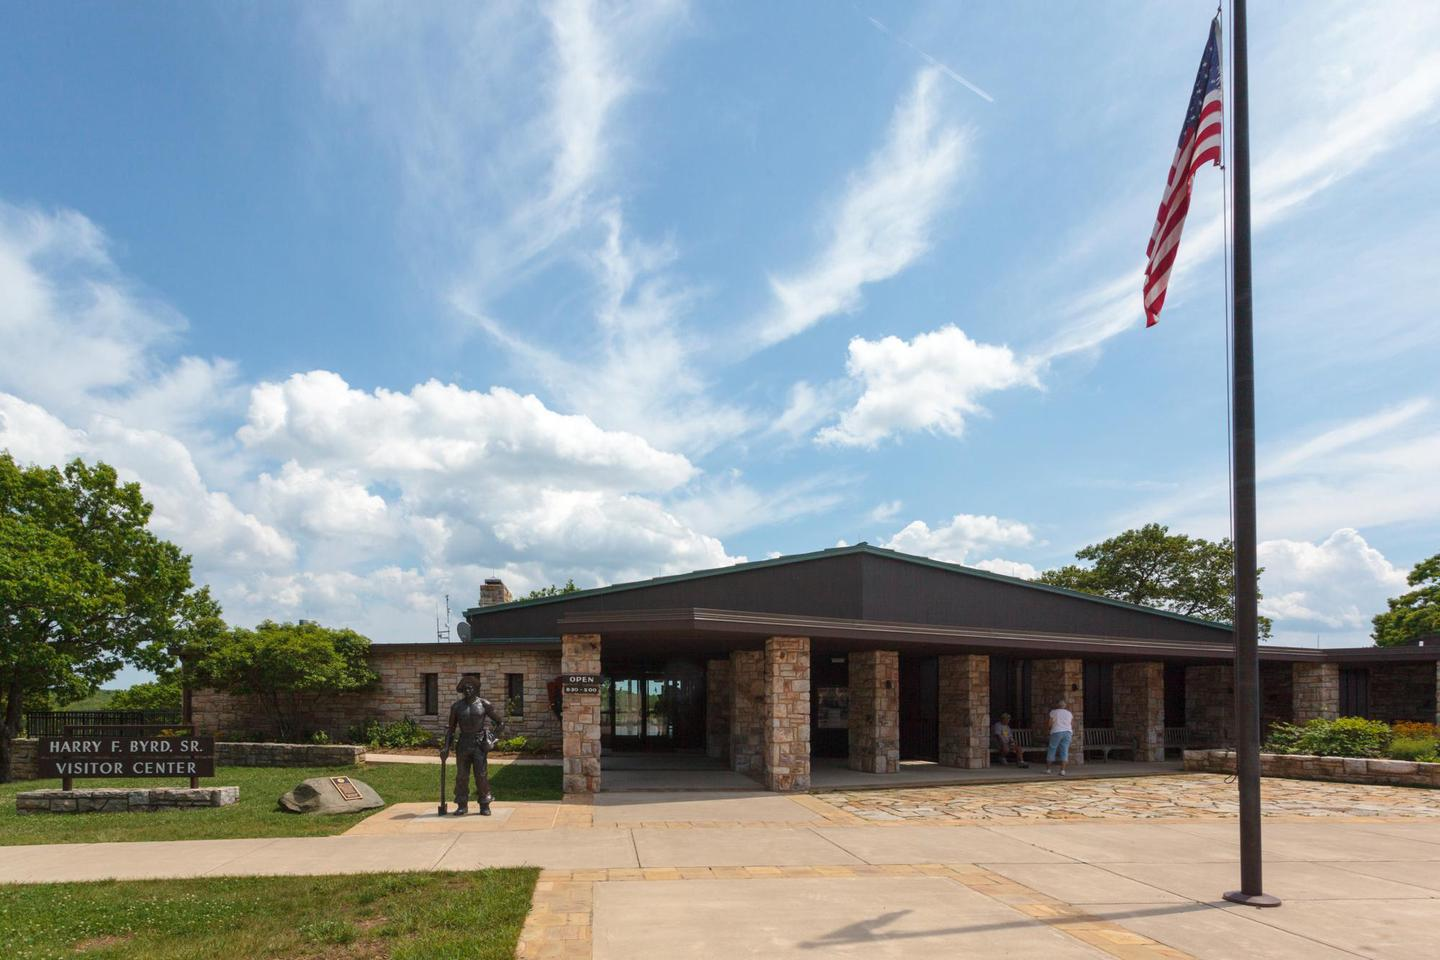 Byrd Visitor Center - EntranceByrd Visitor Center is a great place to learn more about Shenandoah National Park.